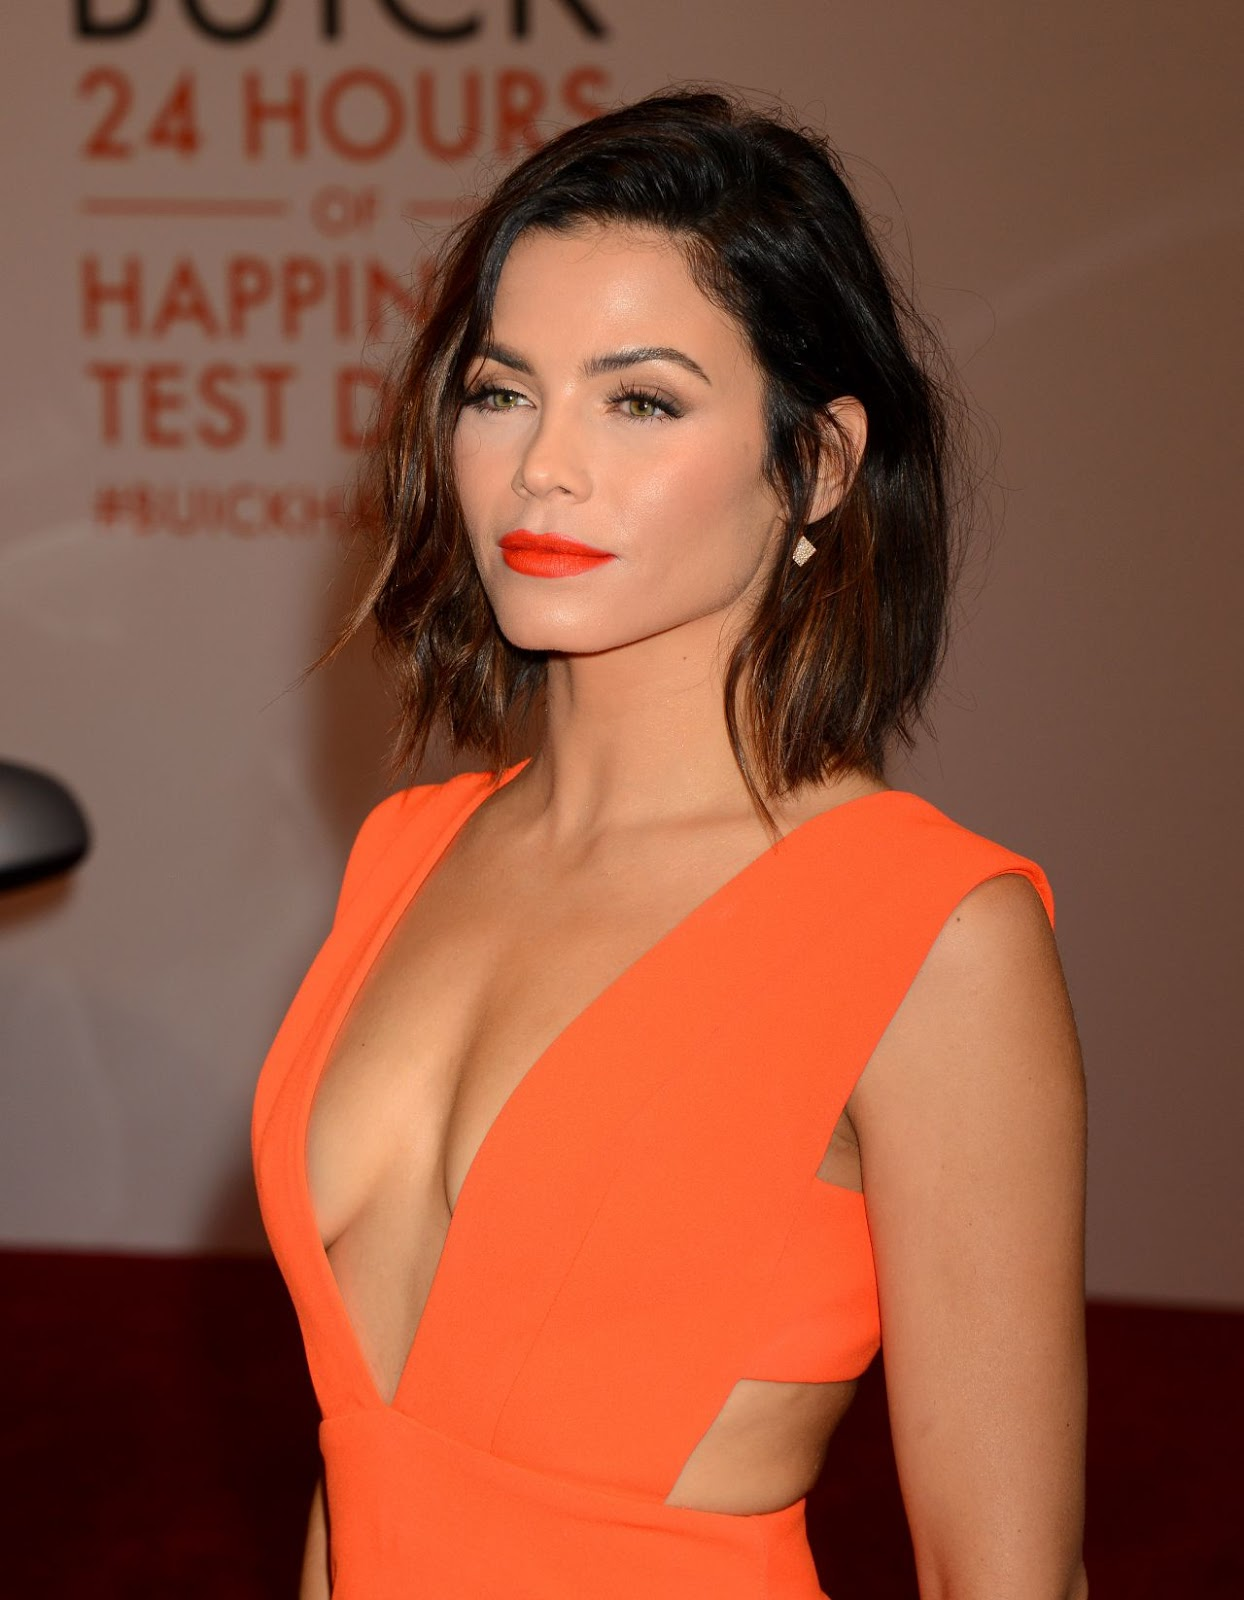 Jenna Dewan Tatum in a plunging dress at '24 Hours of Happiness' Test Drive Launch Event